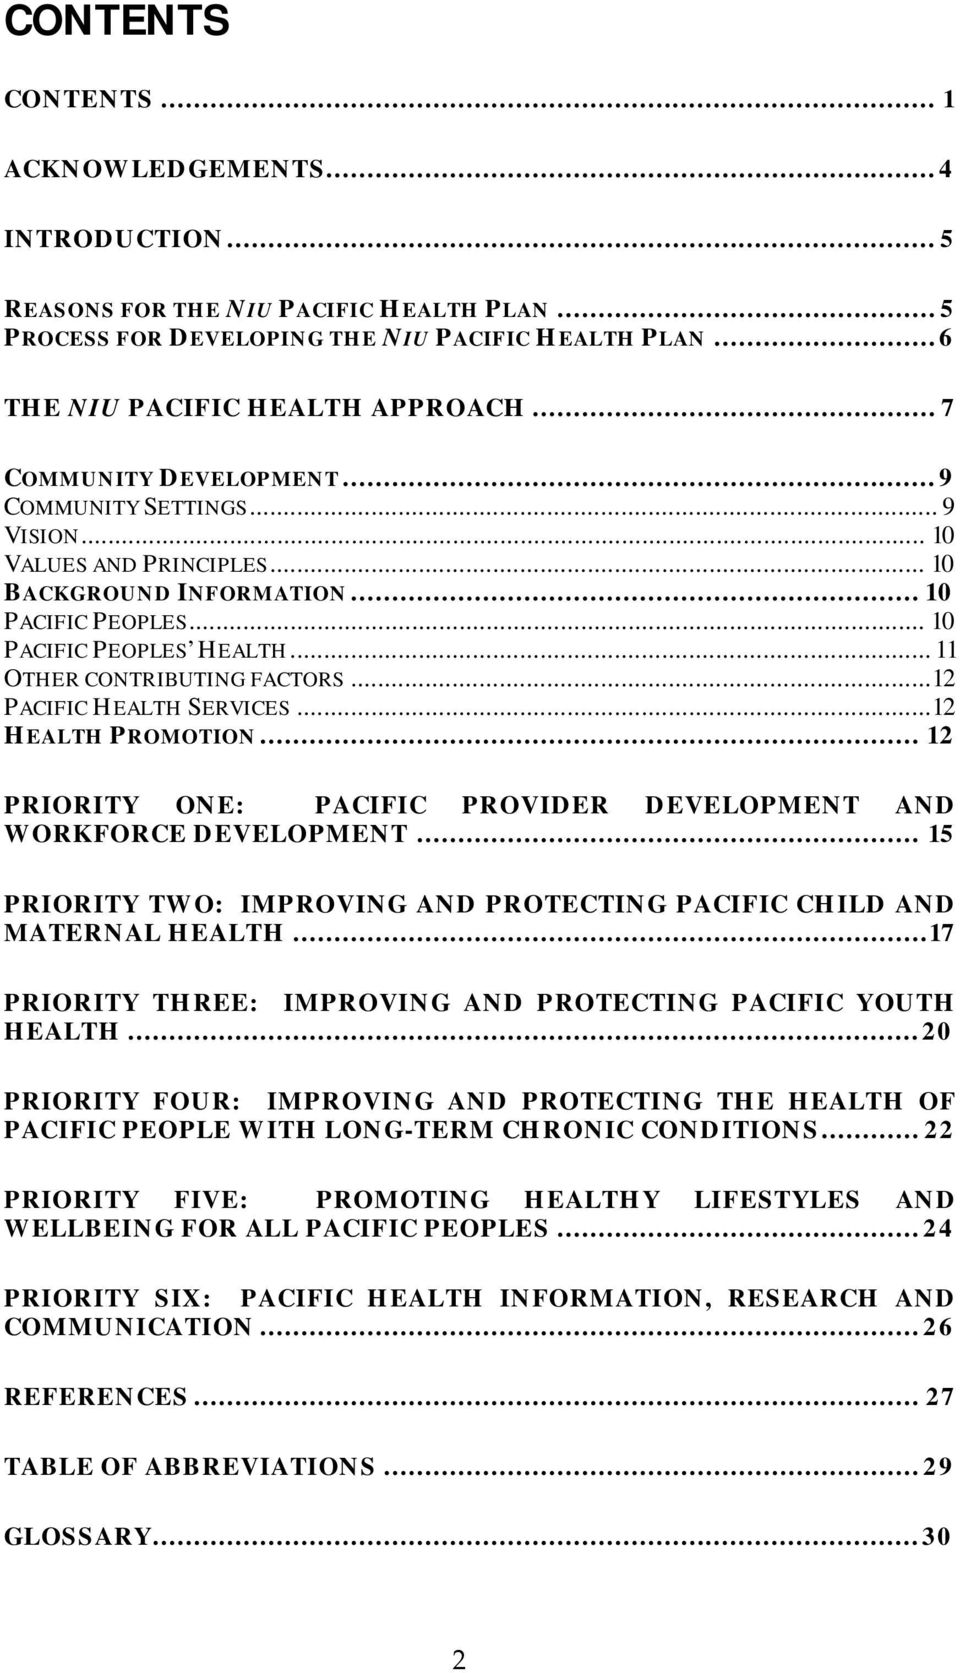 .. 11 OTHER CONTRIBUTING FACTORS...12 PACIFIC HEALTH SERVICES...12 HEALTH PROMOTION... 12 PRIORITY ONE: PACIFIC PROVIDER DEVELOPMENT AND WORKFORCE DEVELOPMENT.